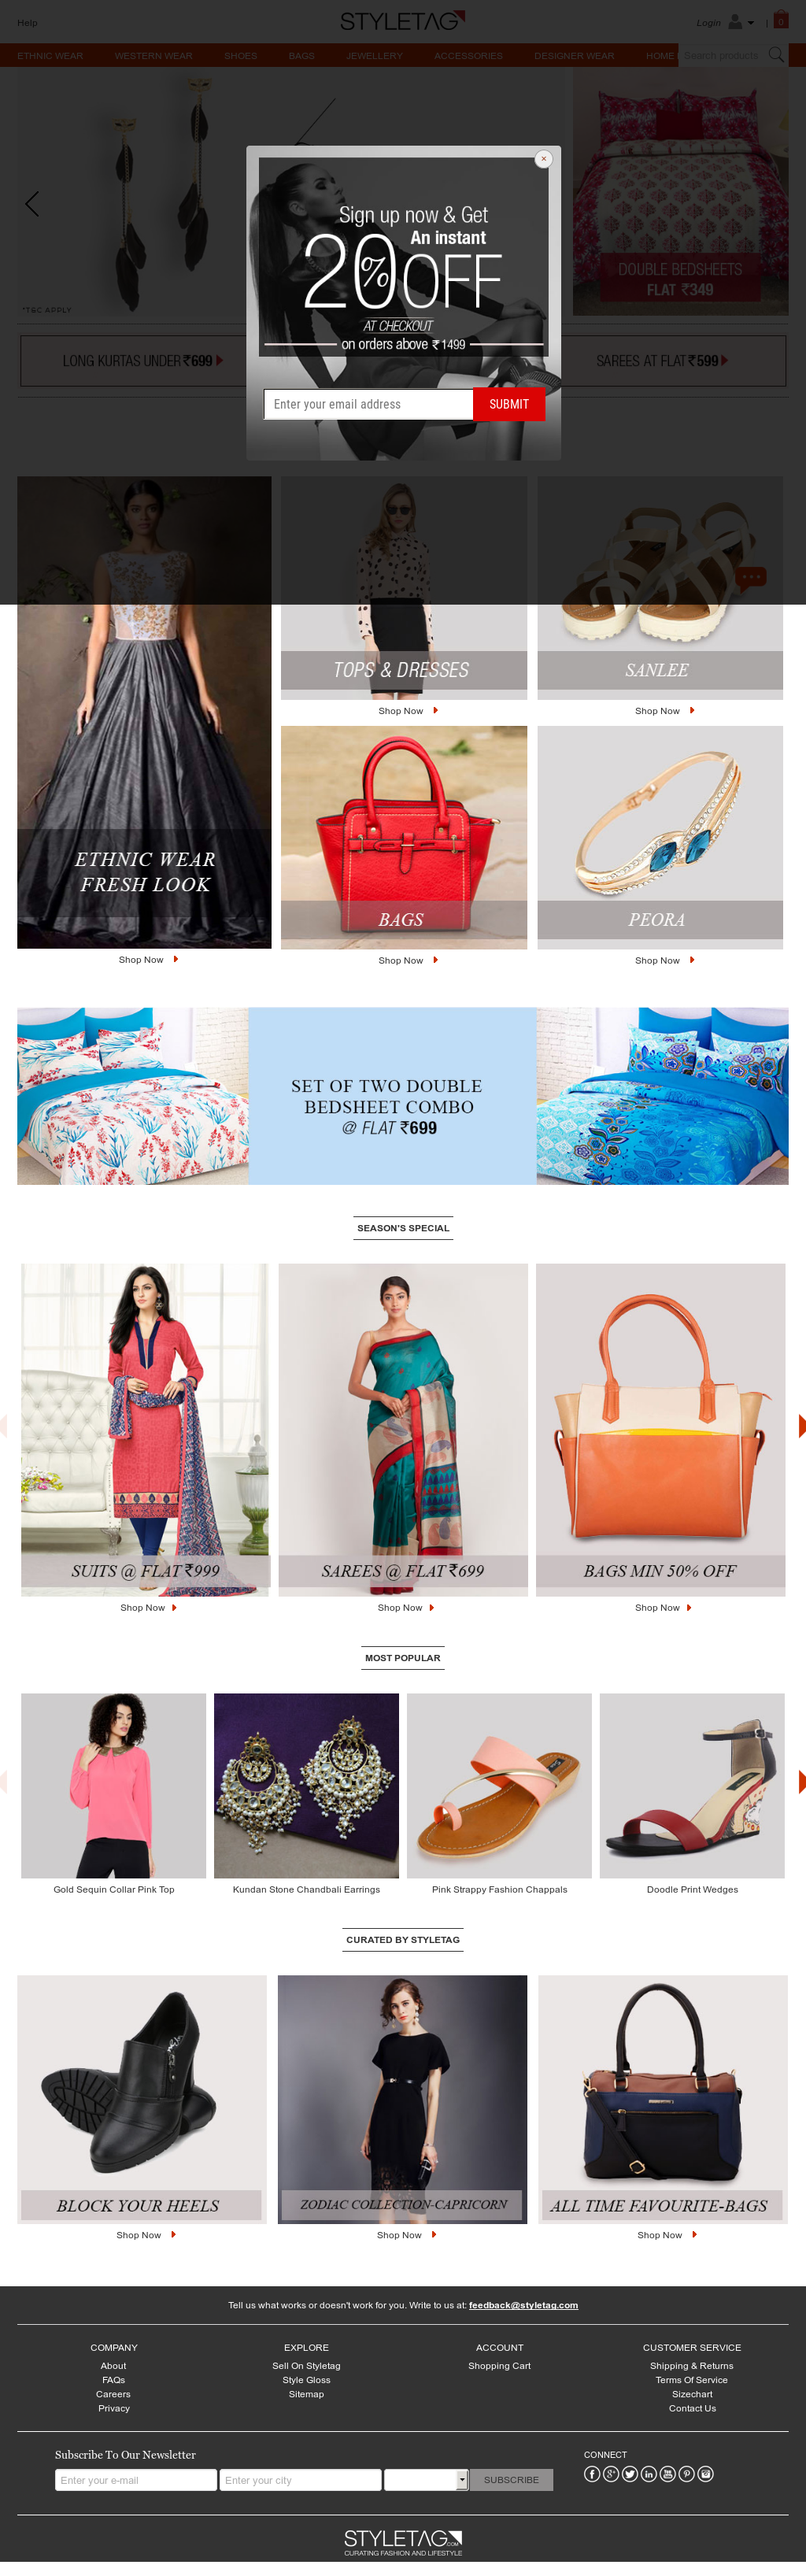 styletag coupons april 2019